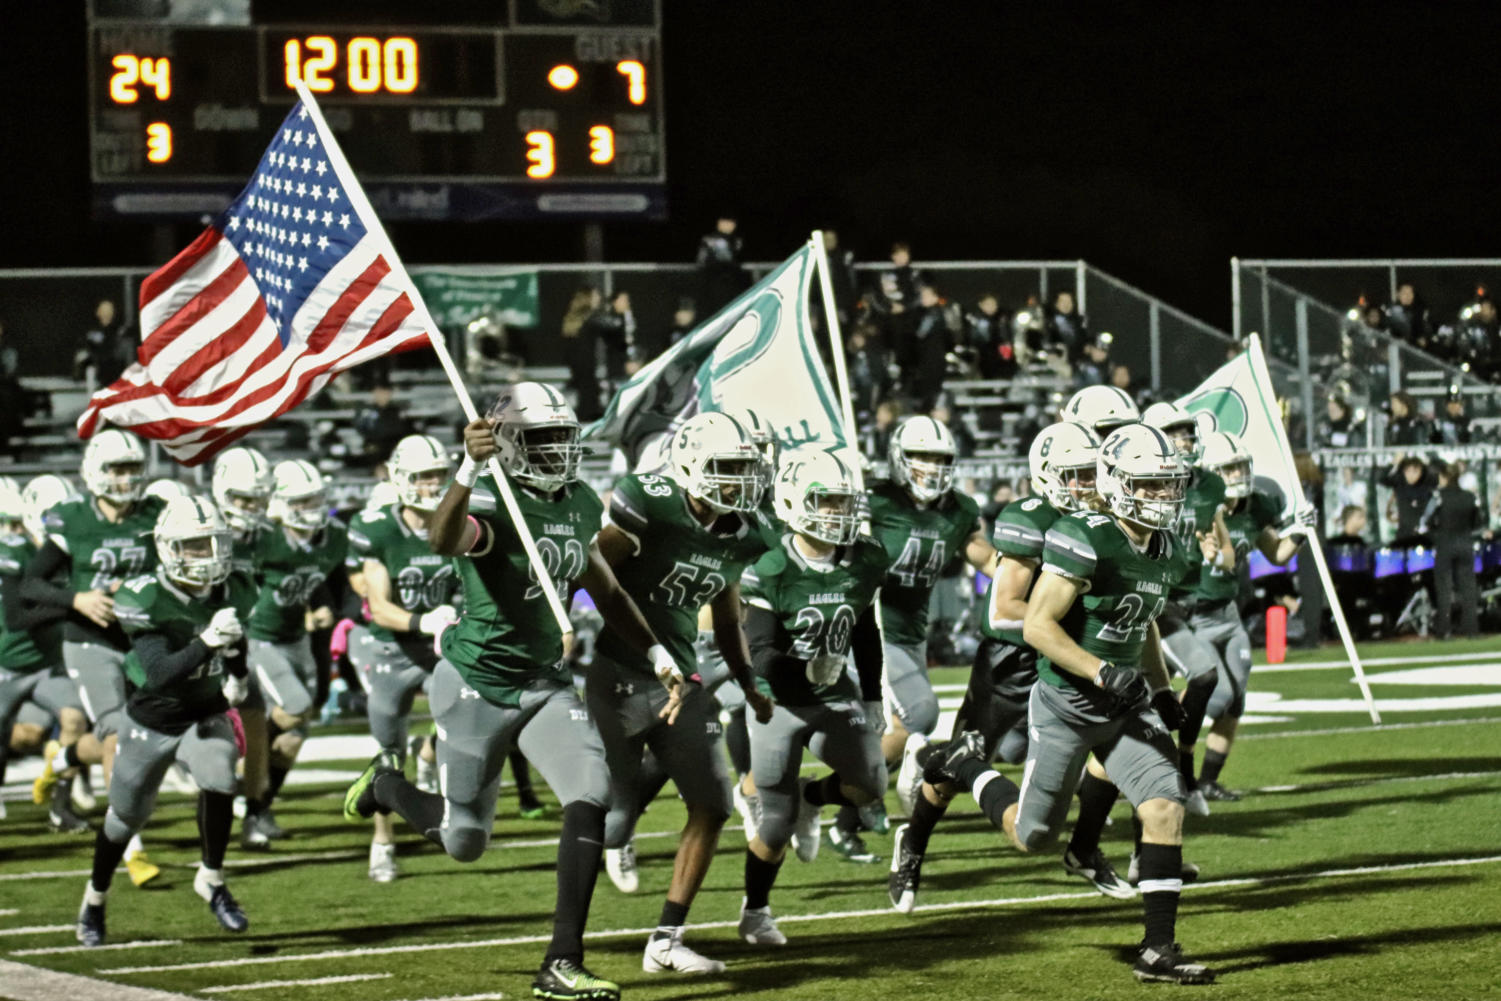 Varsity senior Dylan Harrison, No. 20 in the center, helps lead his team into Eagle Stadium. Harrison will be playing in the last game at Eagle Stadium, starting at 7 p.m. Friday when Prosper takes on Plano West. His father, Jeff Harrison, played in the first.